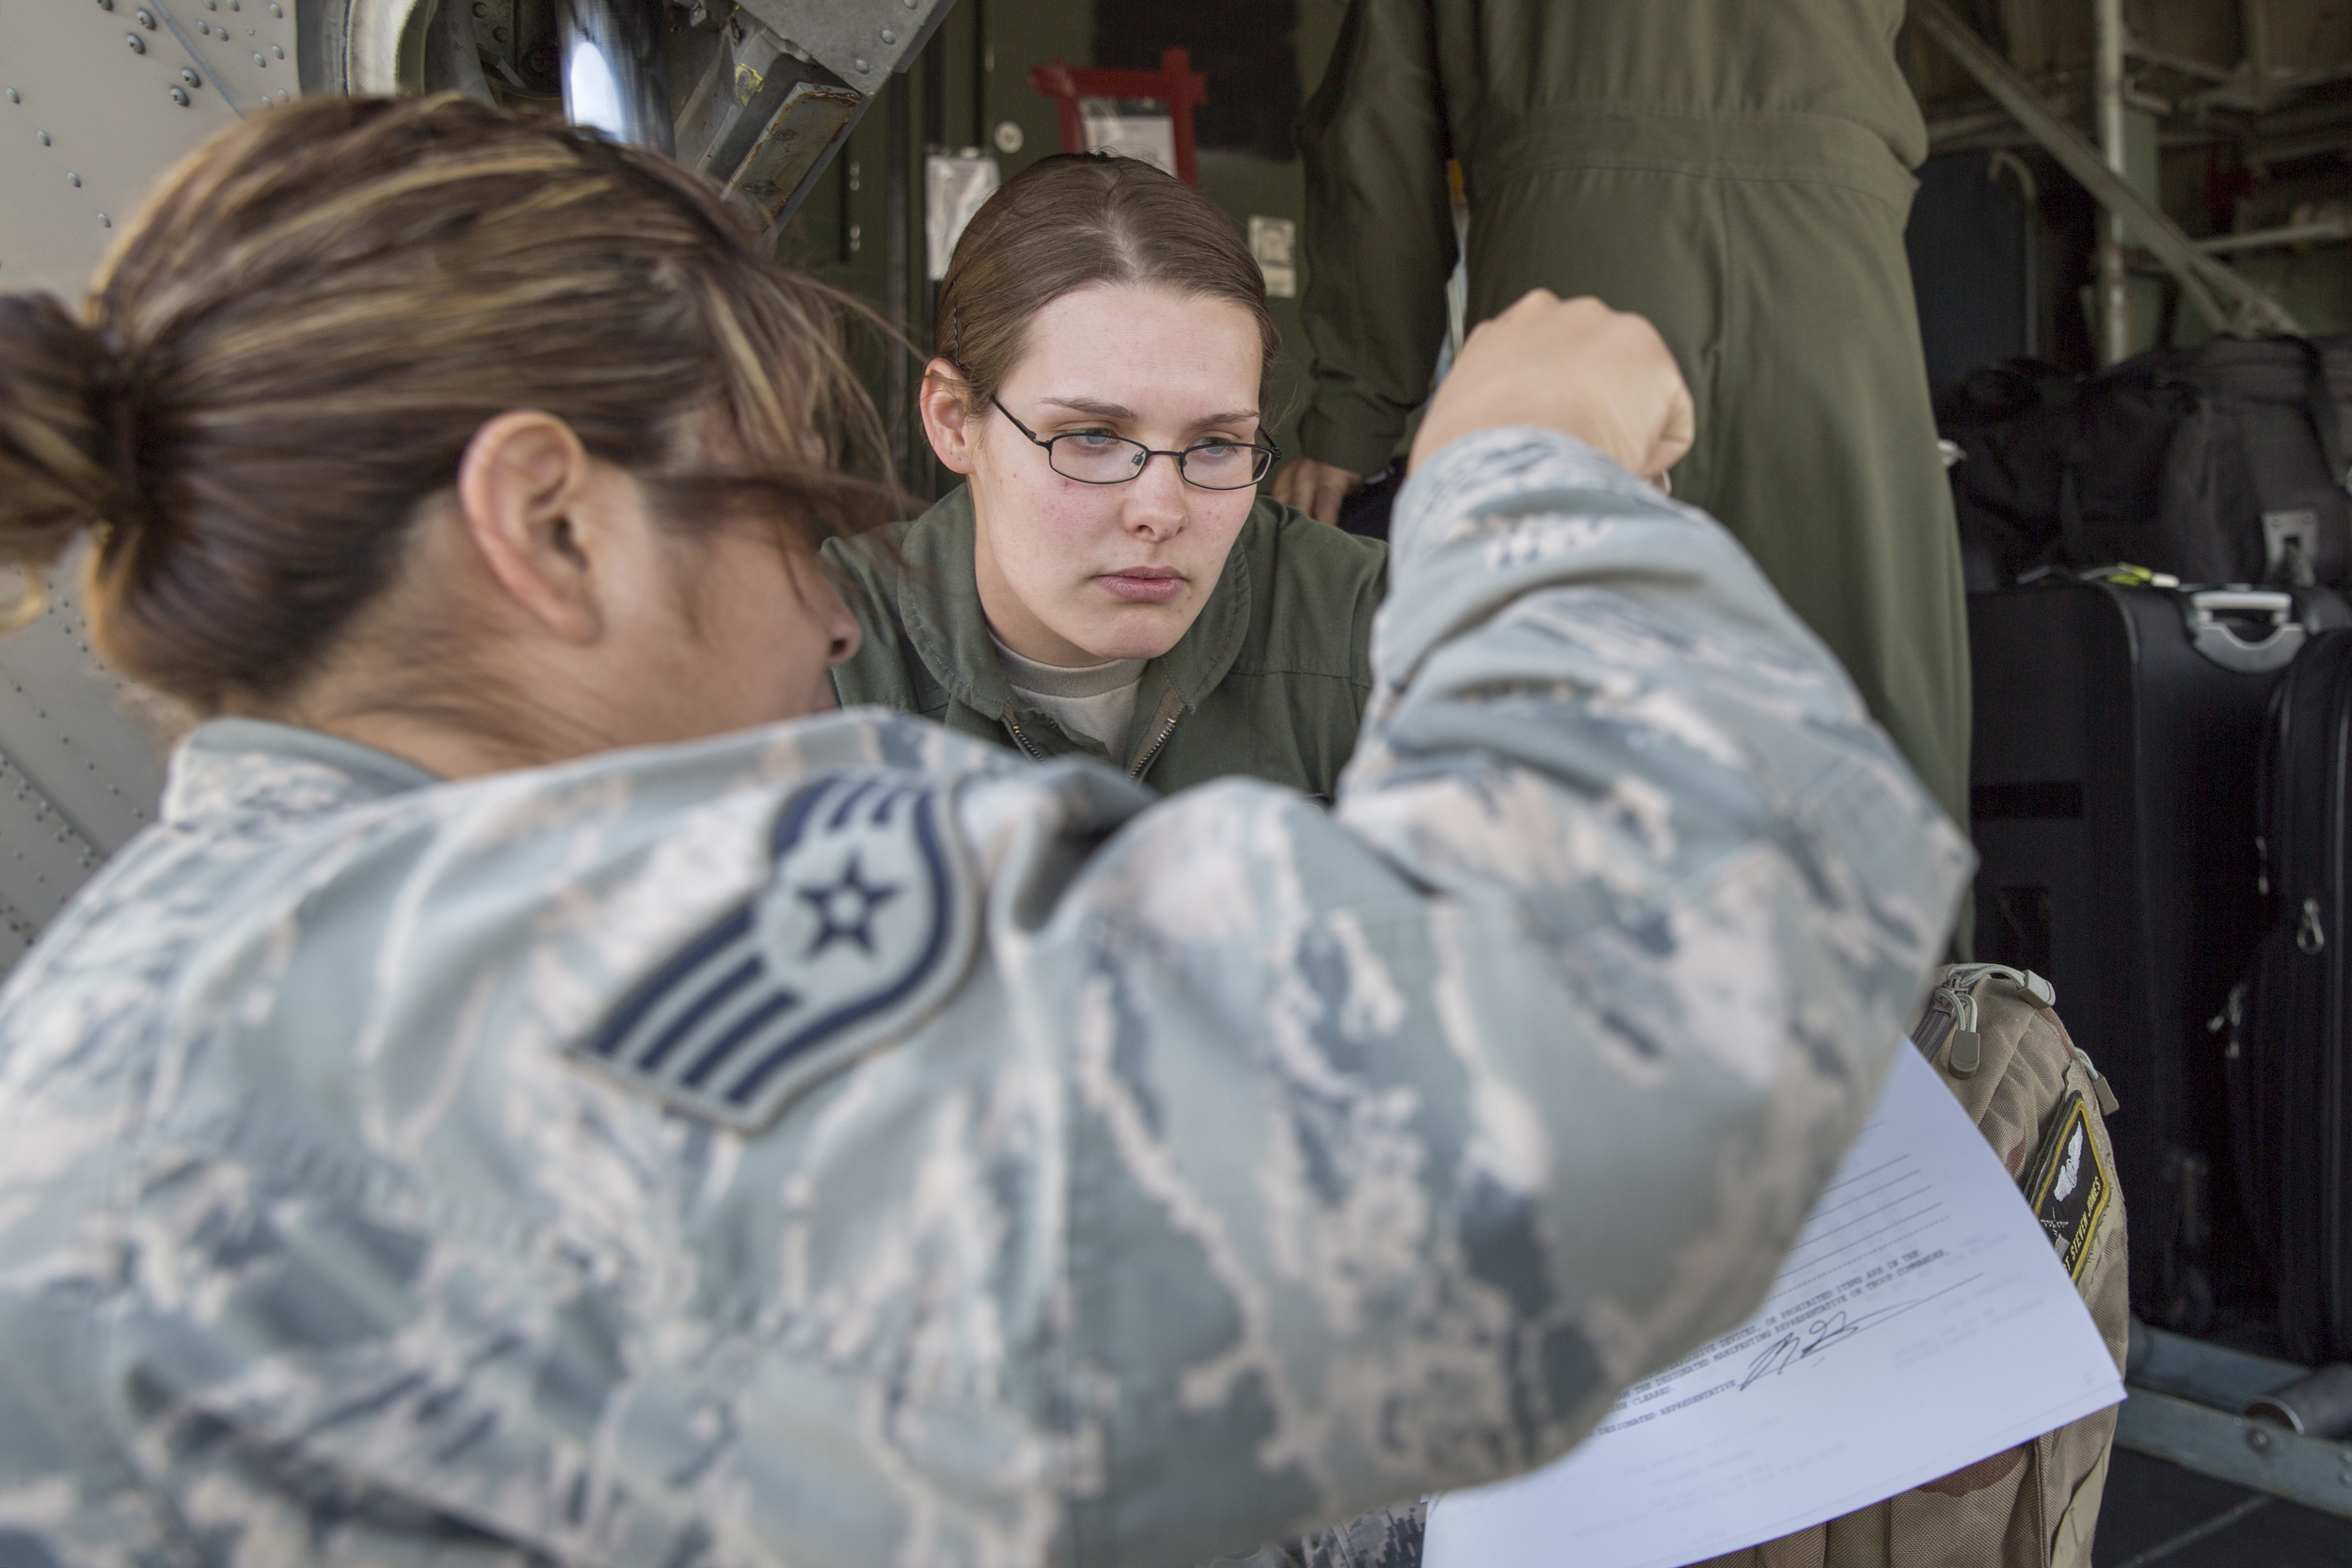 (Left and right) Staff Sgt. Isabell Hood, 374th Logistics Readiness Squadron, and Senior Airman Taylor Hubstenberger, 36th Airlift Squadron loadmaster, check documents at Yokota Air Base, Japan, May 5, 2015. Airmen departed to conduct humanitarian assistance and disaster relief operations in support of the Government of Nepal in the wake of a 7.8 magnitude earthquake that devastated many regions of the country on April 25, 2015. (U.S. Air Force photo by Osakabe Yasuo/Released)